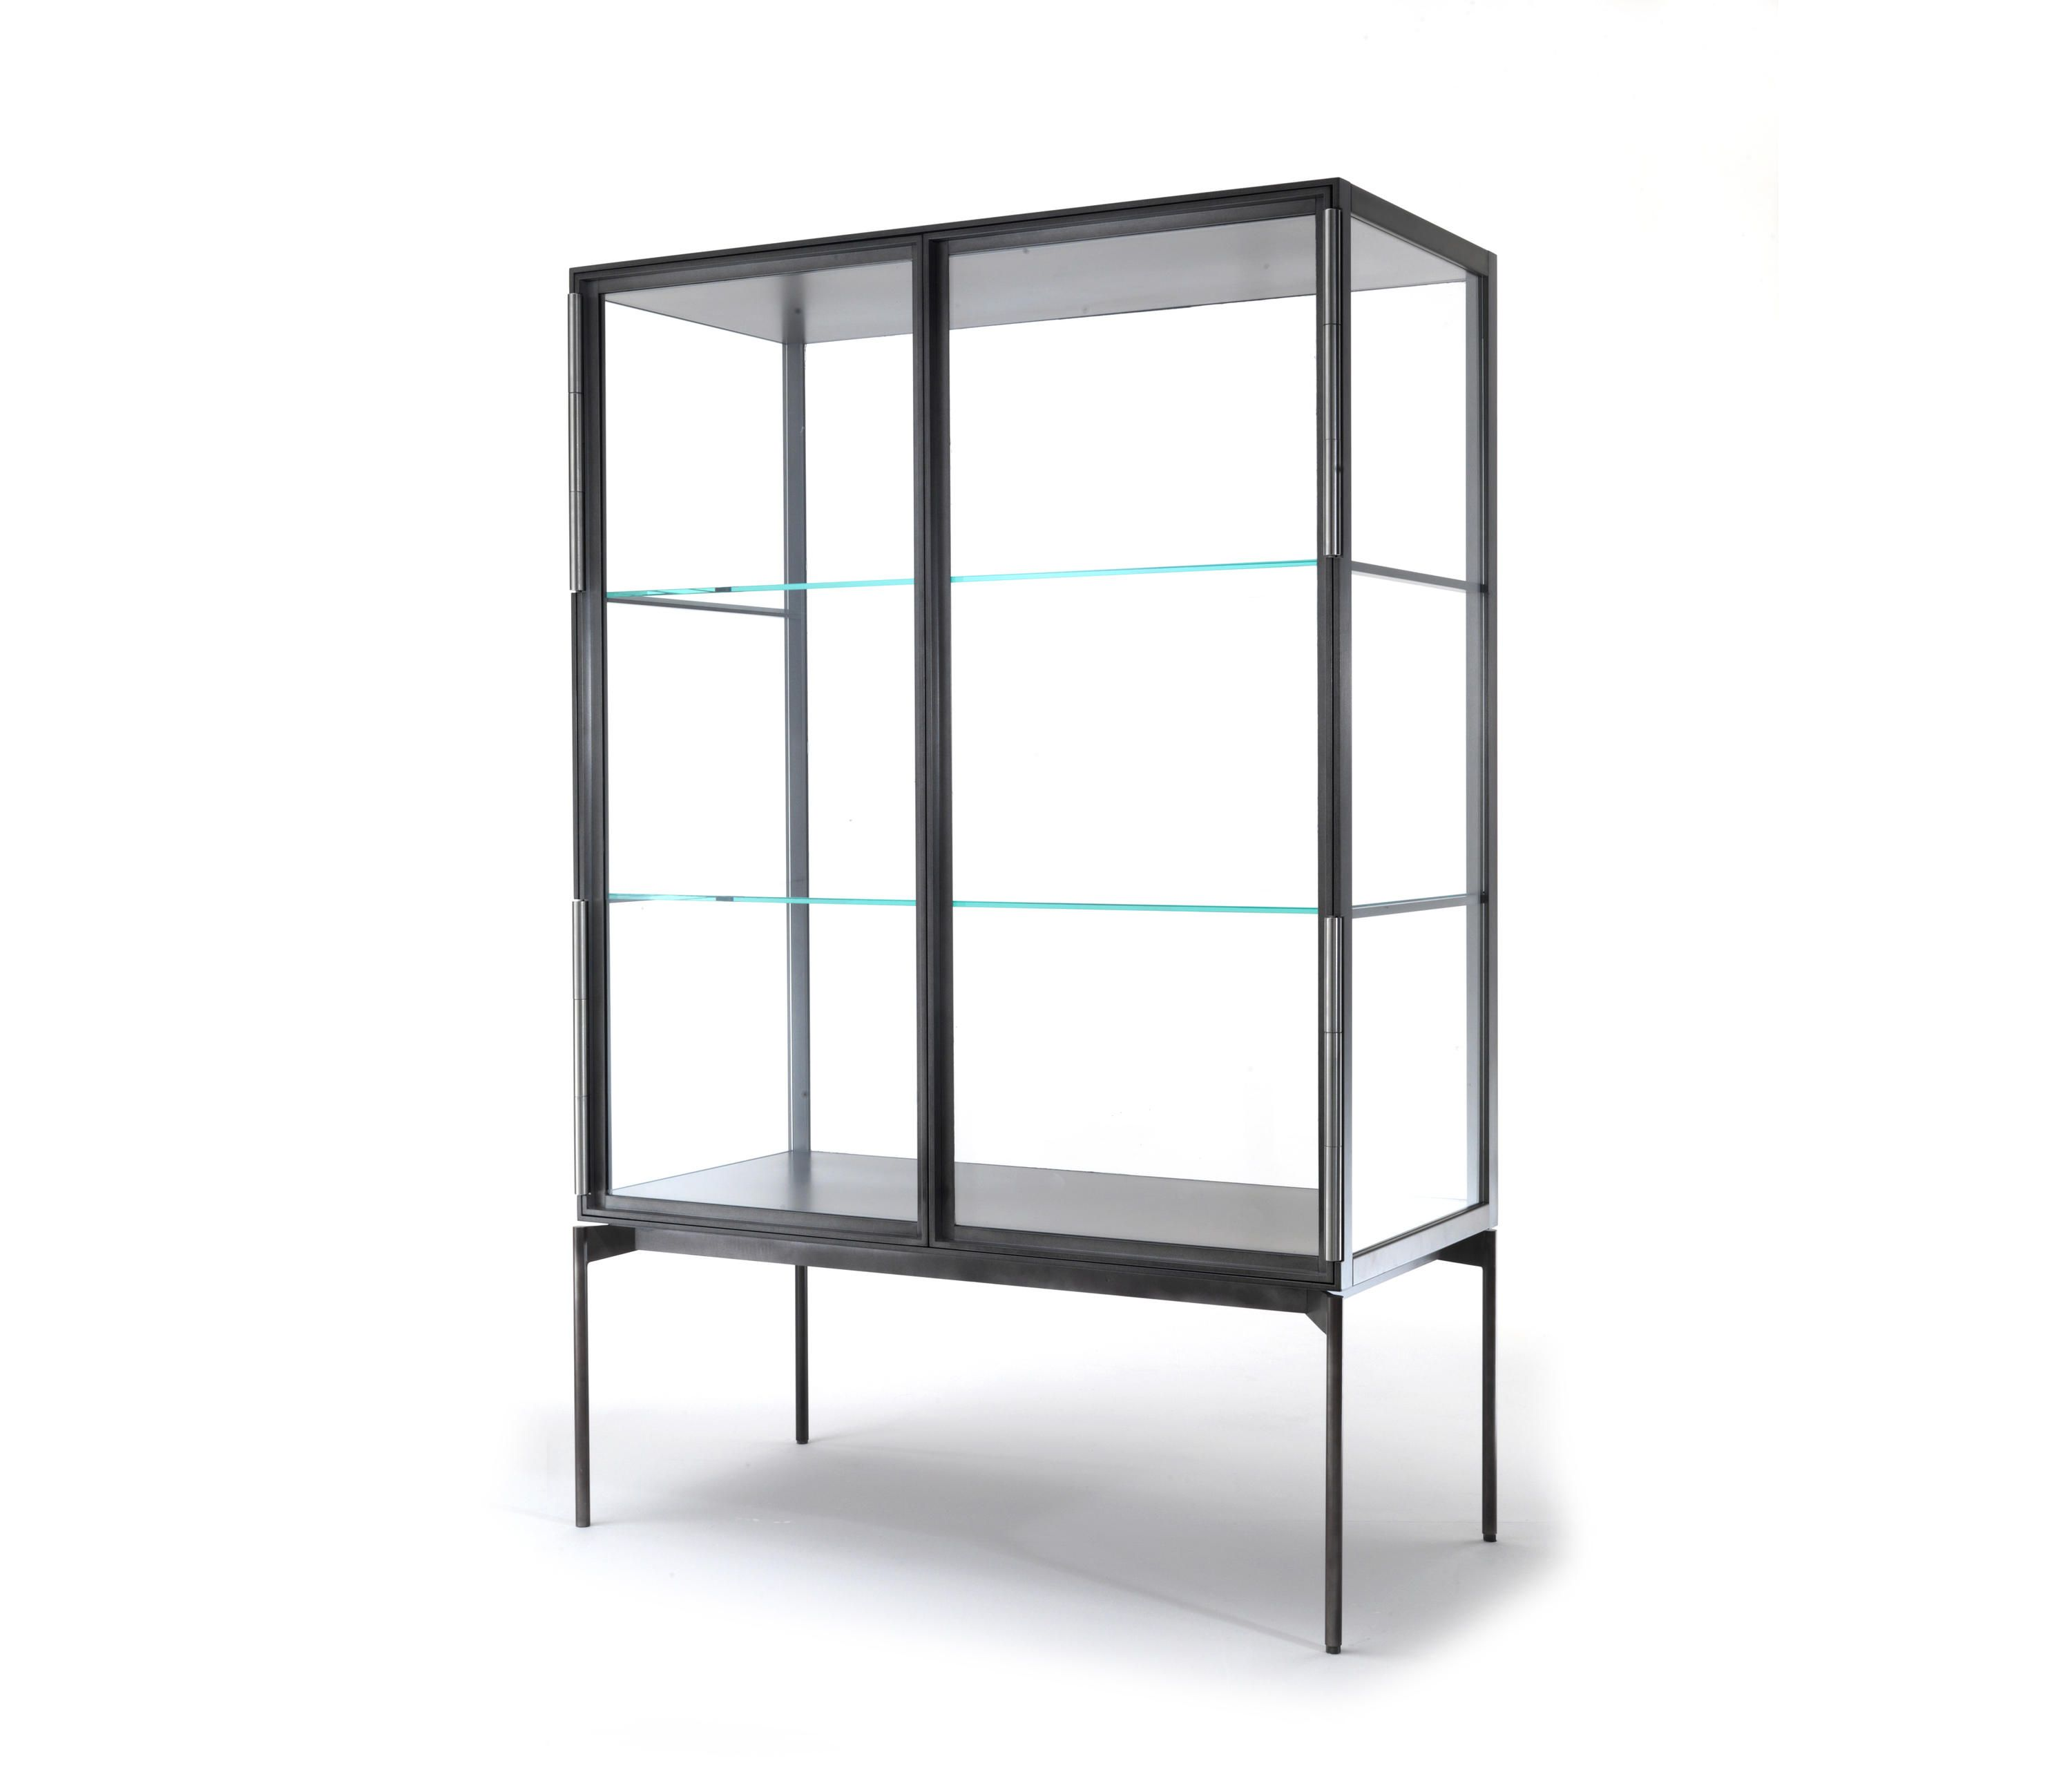 48 Glass Display Case W Led Side Lights Sliding Door Frameless Black Glass Display Case Glass Shelves Display Case